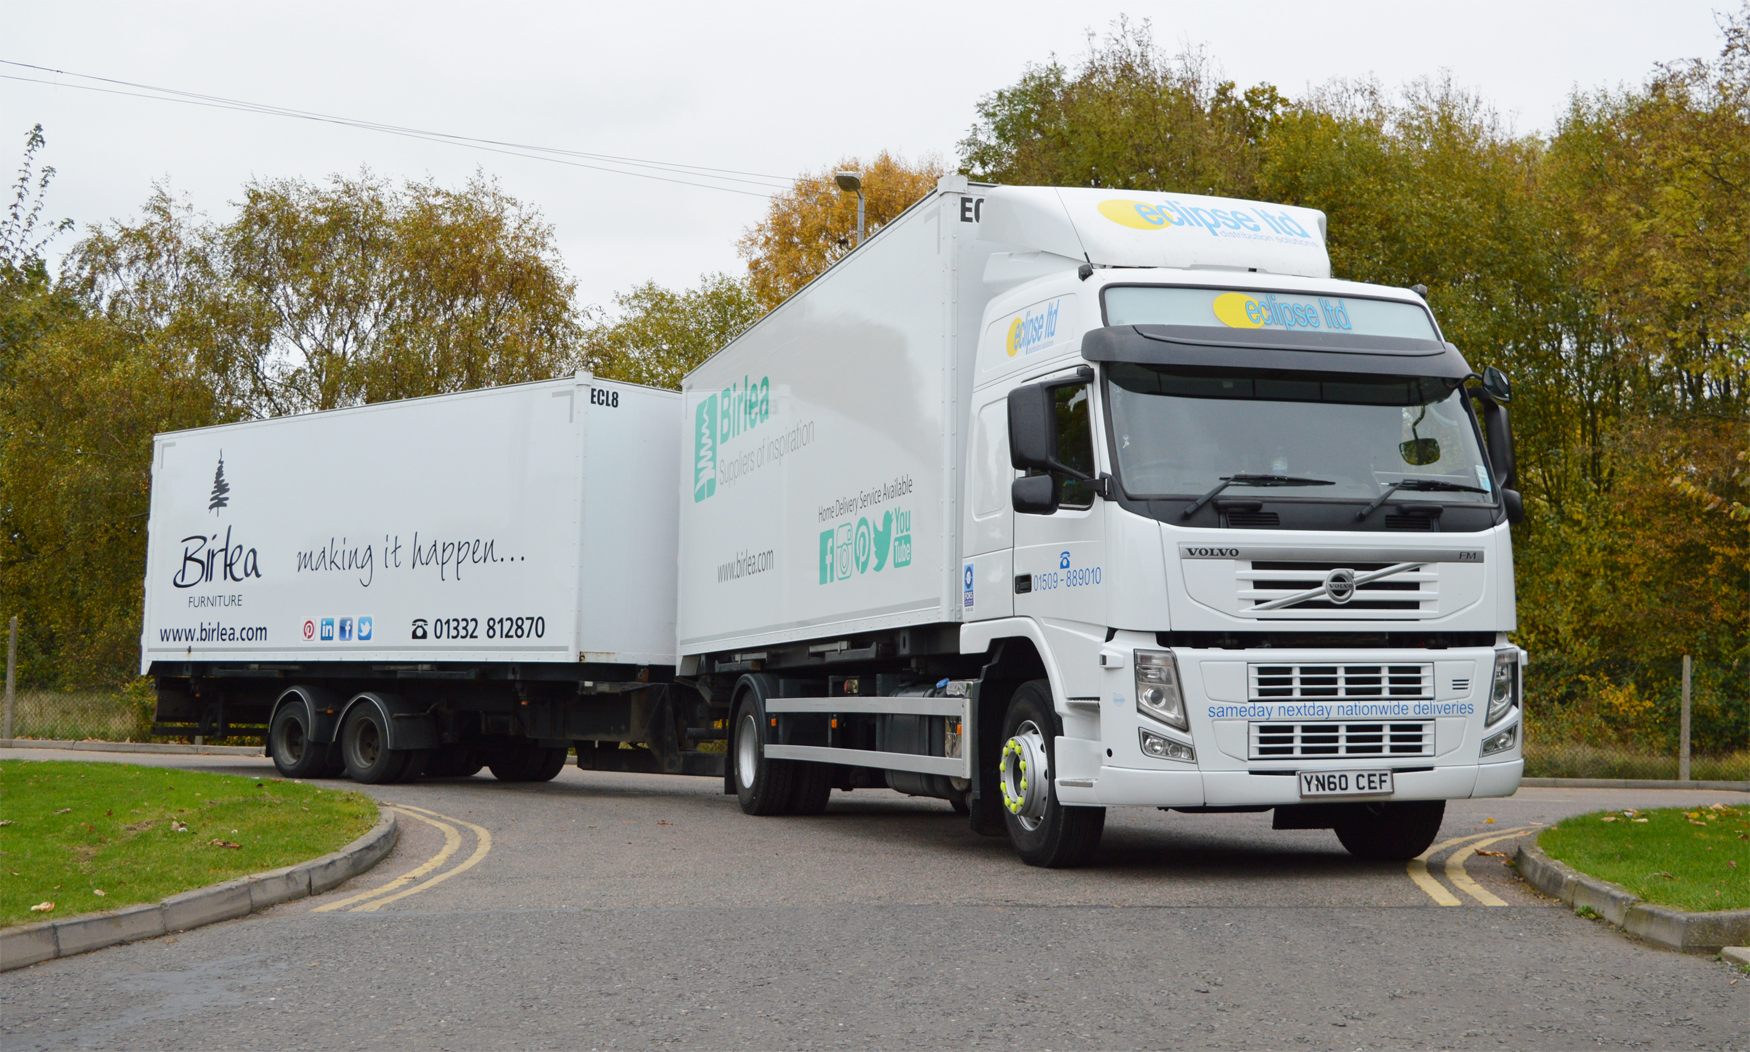 An image showing an Eclipse Distribution Solutions Ltd lorry attached to a Birlea delivery suppliers trailer.